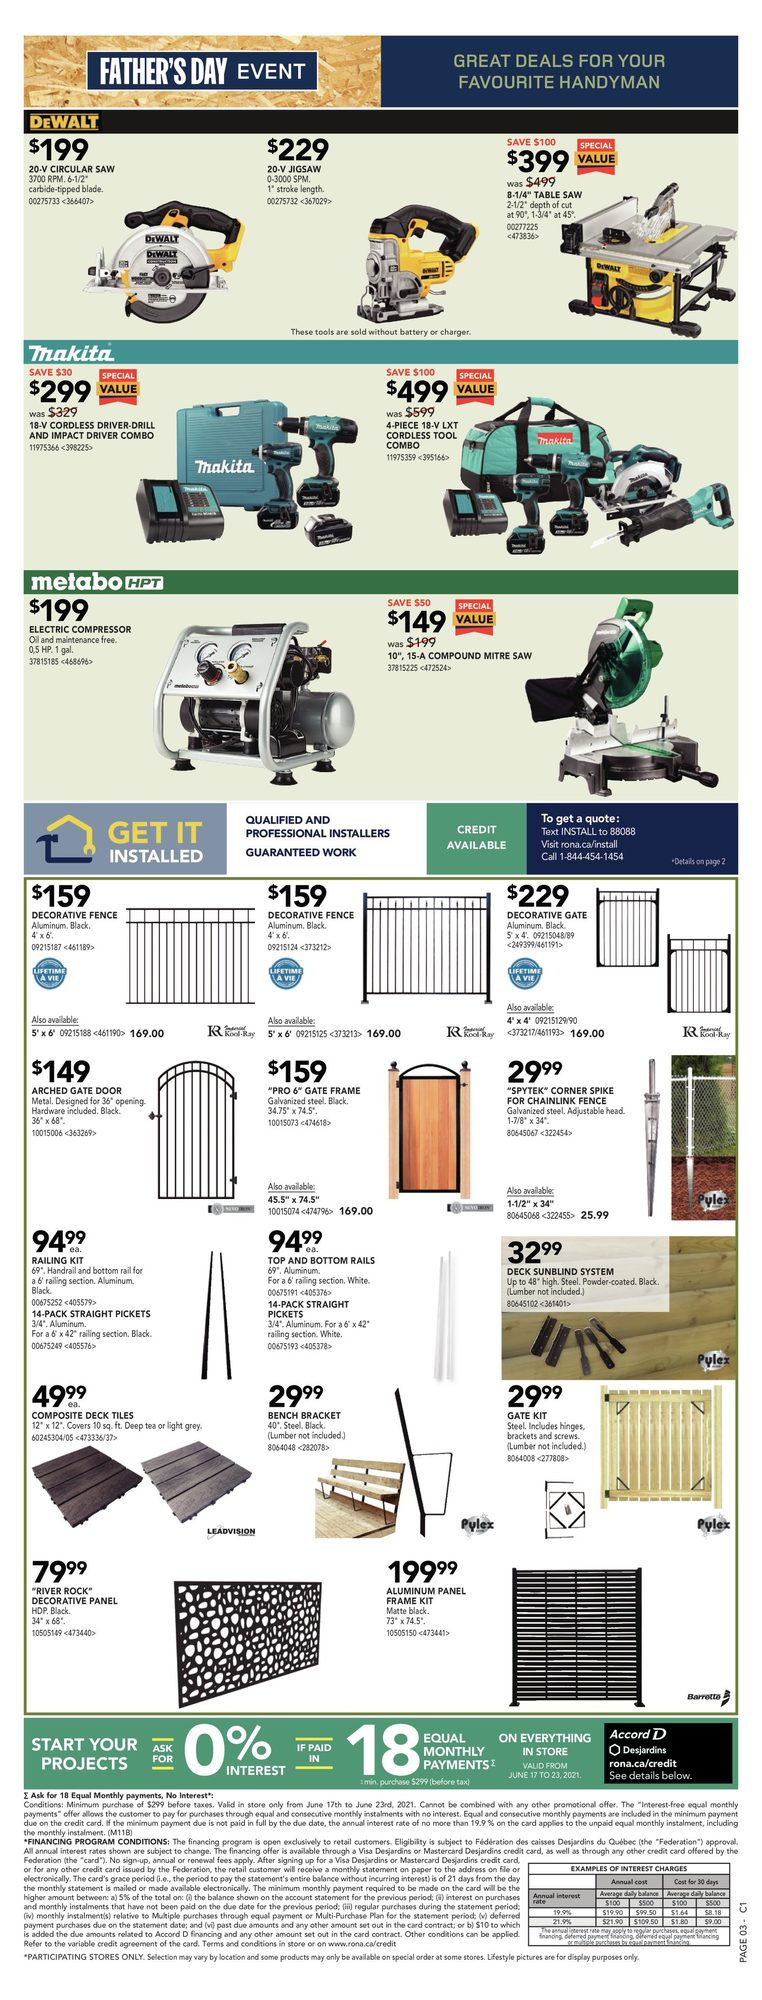 Rona - Weekly Flyer Specials - Father's Day Event - Page 5